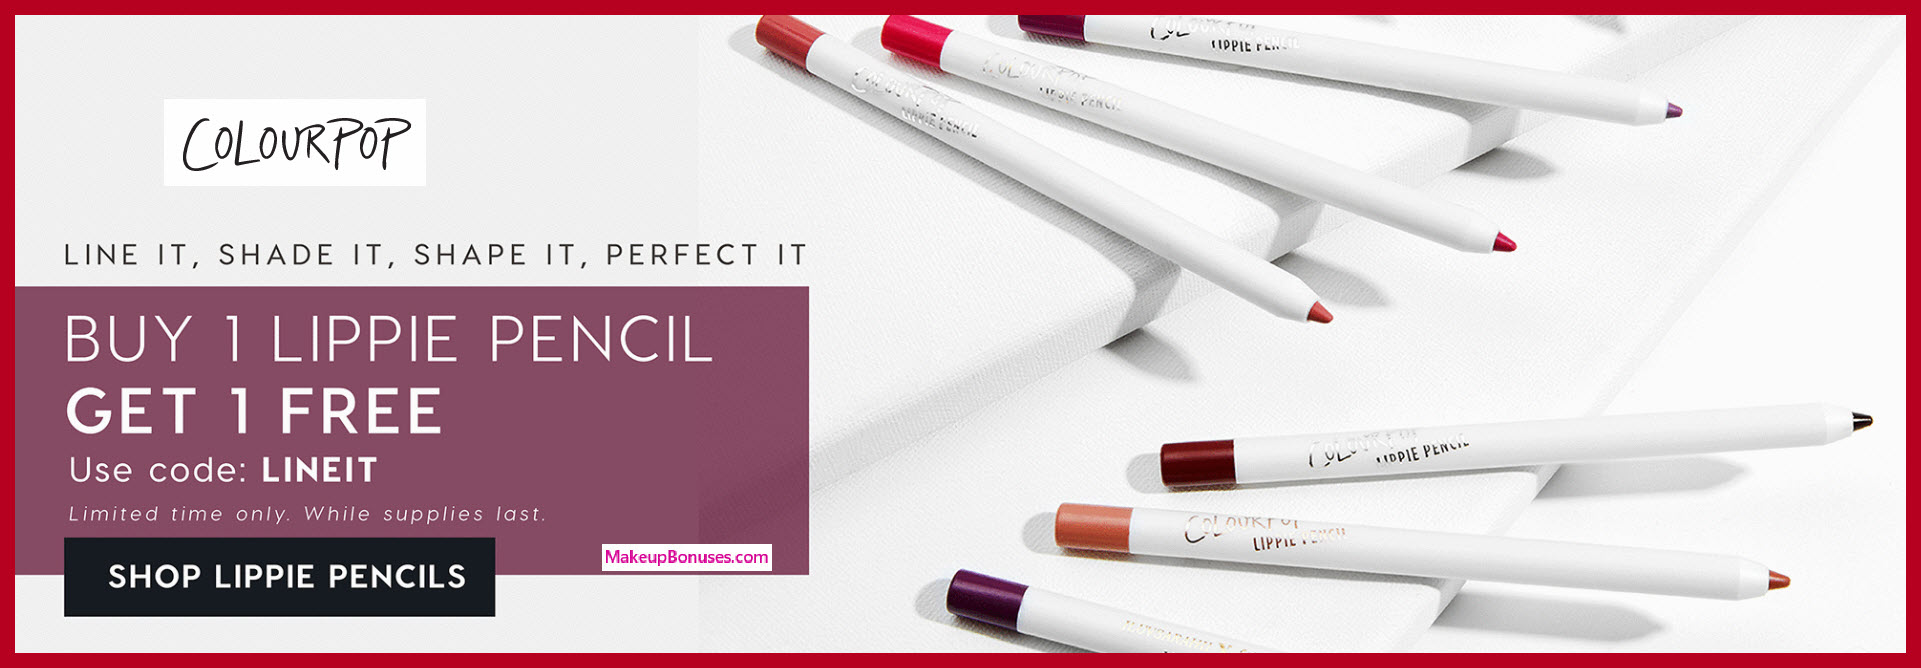 Receive a free 5-pc gift with 5 lippie pencils purchase